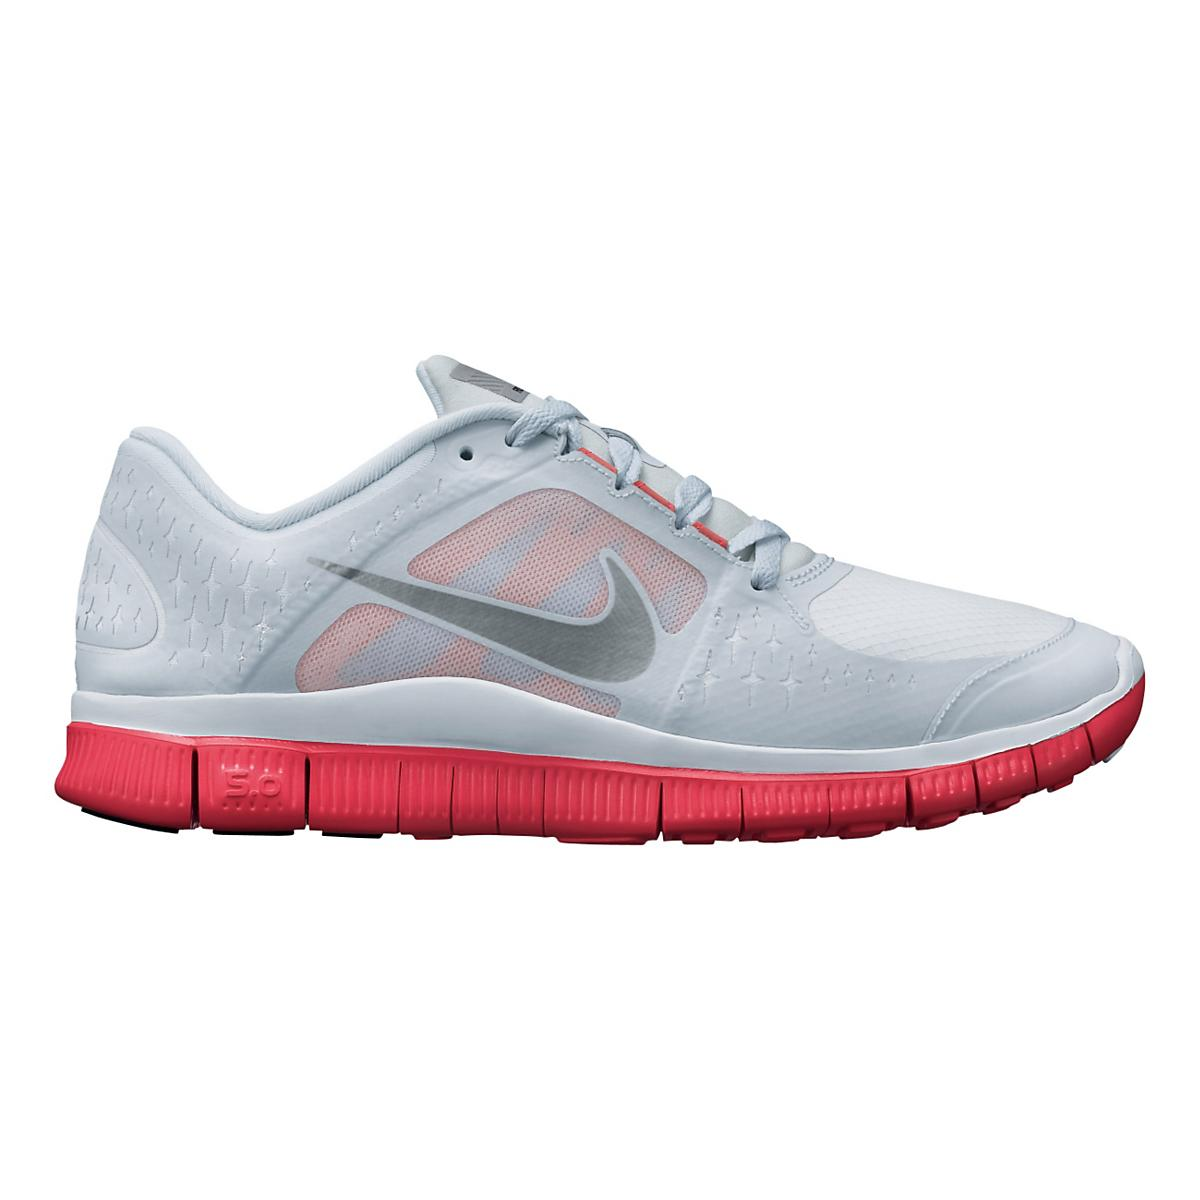 2d93420d49ee ... uk womens nike free run 3 shield running shoe at road runner sports  0d788 f4295